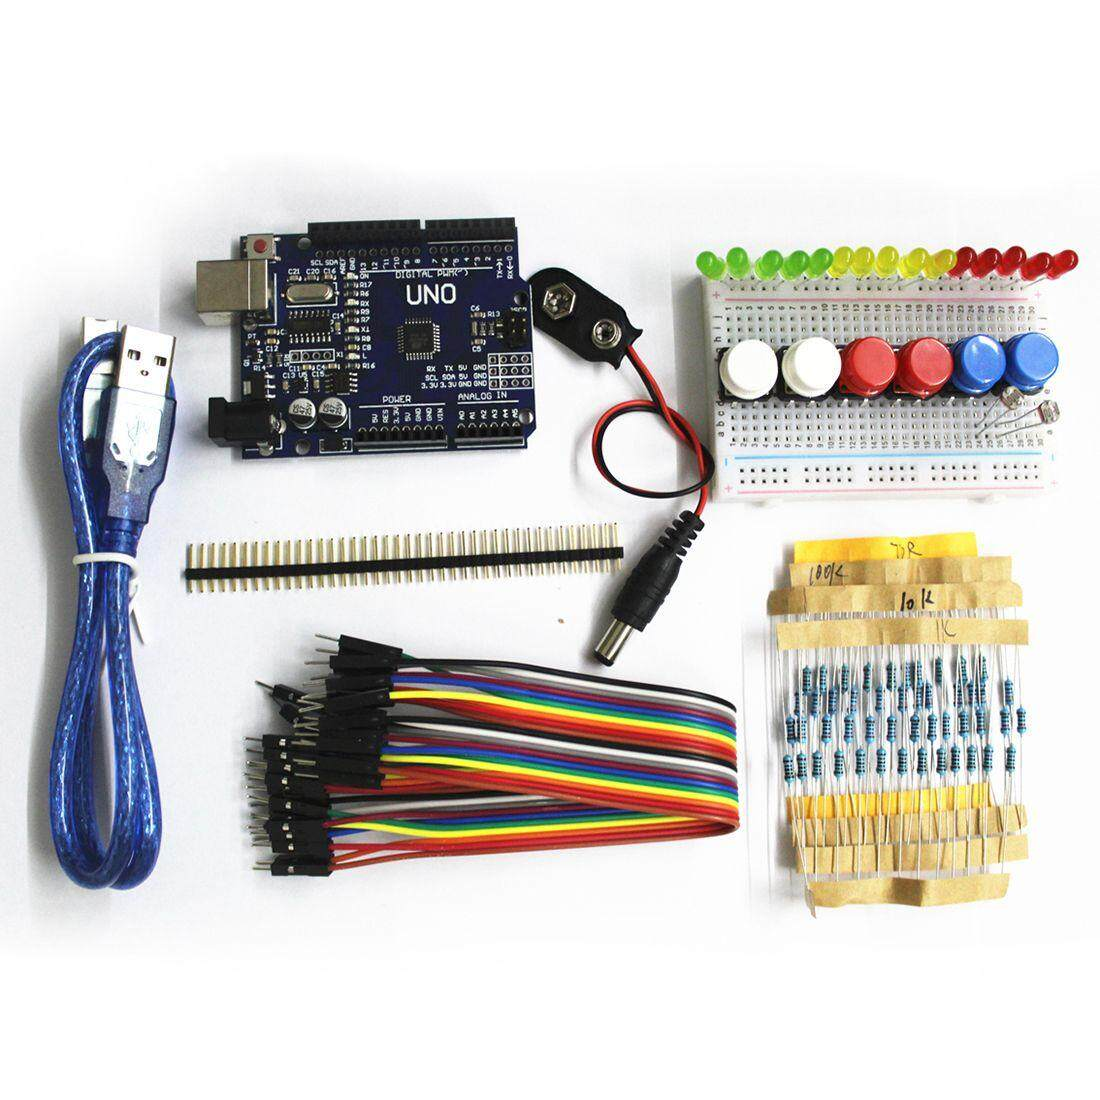 Electric Circuit For Sale Circuitry Prices Brands Review In 220 Gfci Breaker Wiring Diagram Mobile Home Electrical Outlet 1set New Starter Kit Uno R3 Mini Breadboard Led Jumper Wire Button Arduino Compatile